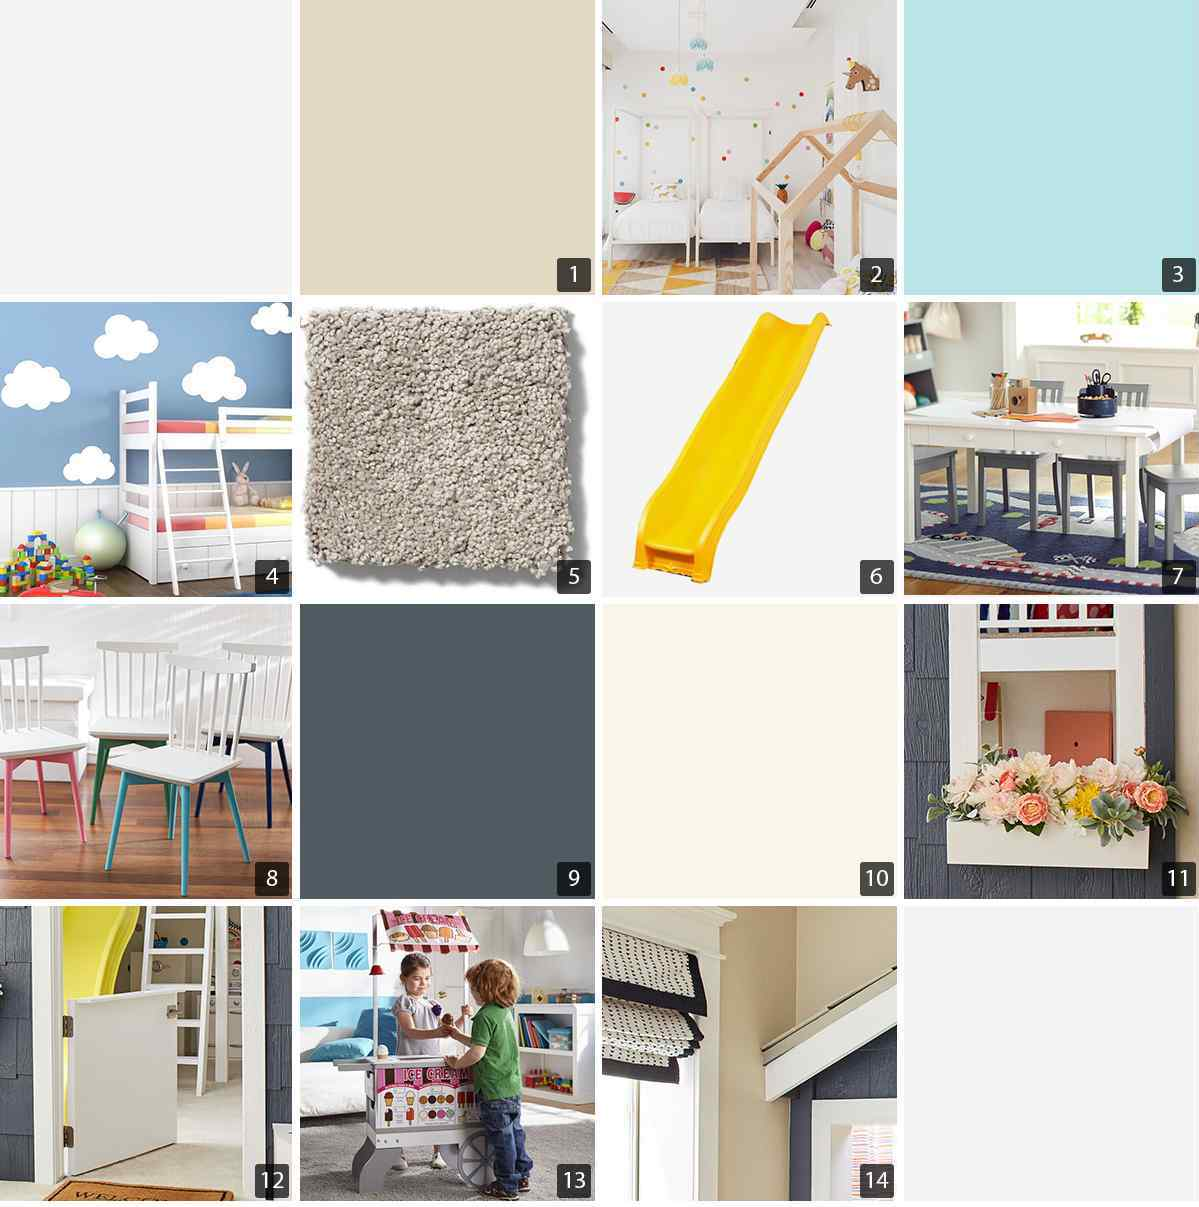 Collage of playroom products including wall decals, yellow slide, and chairs photo